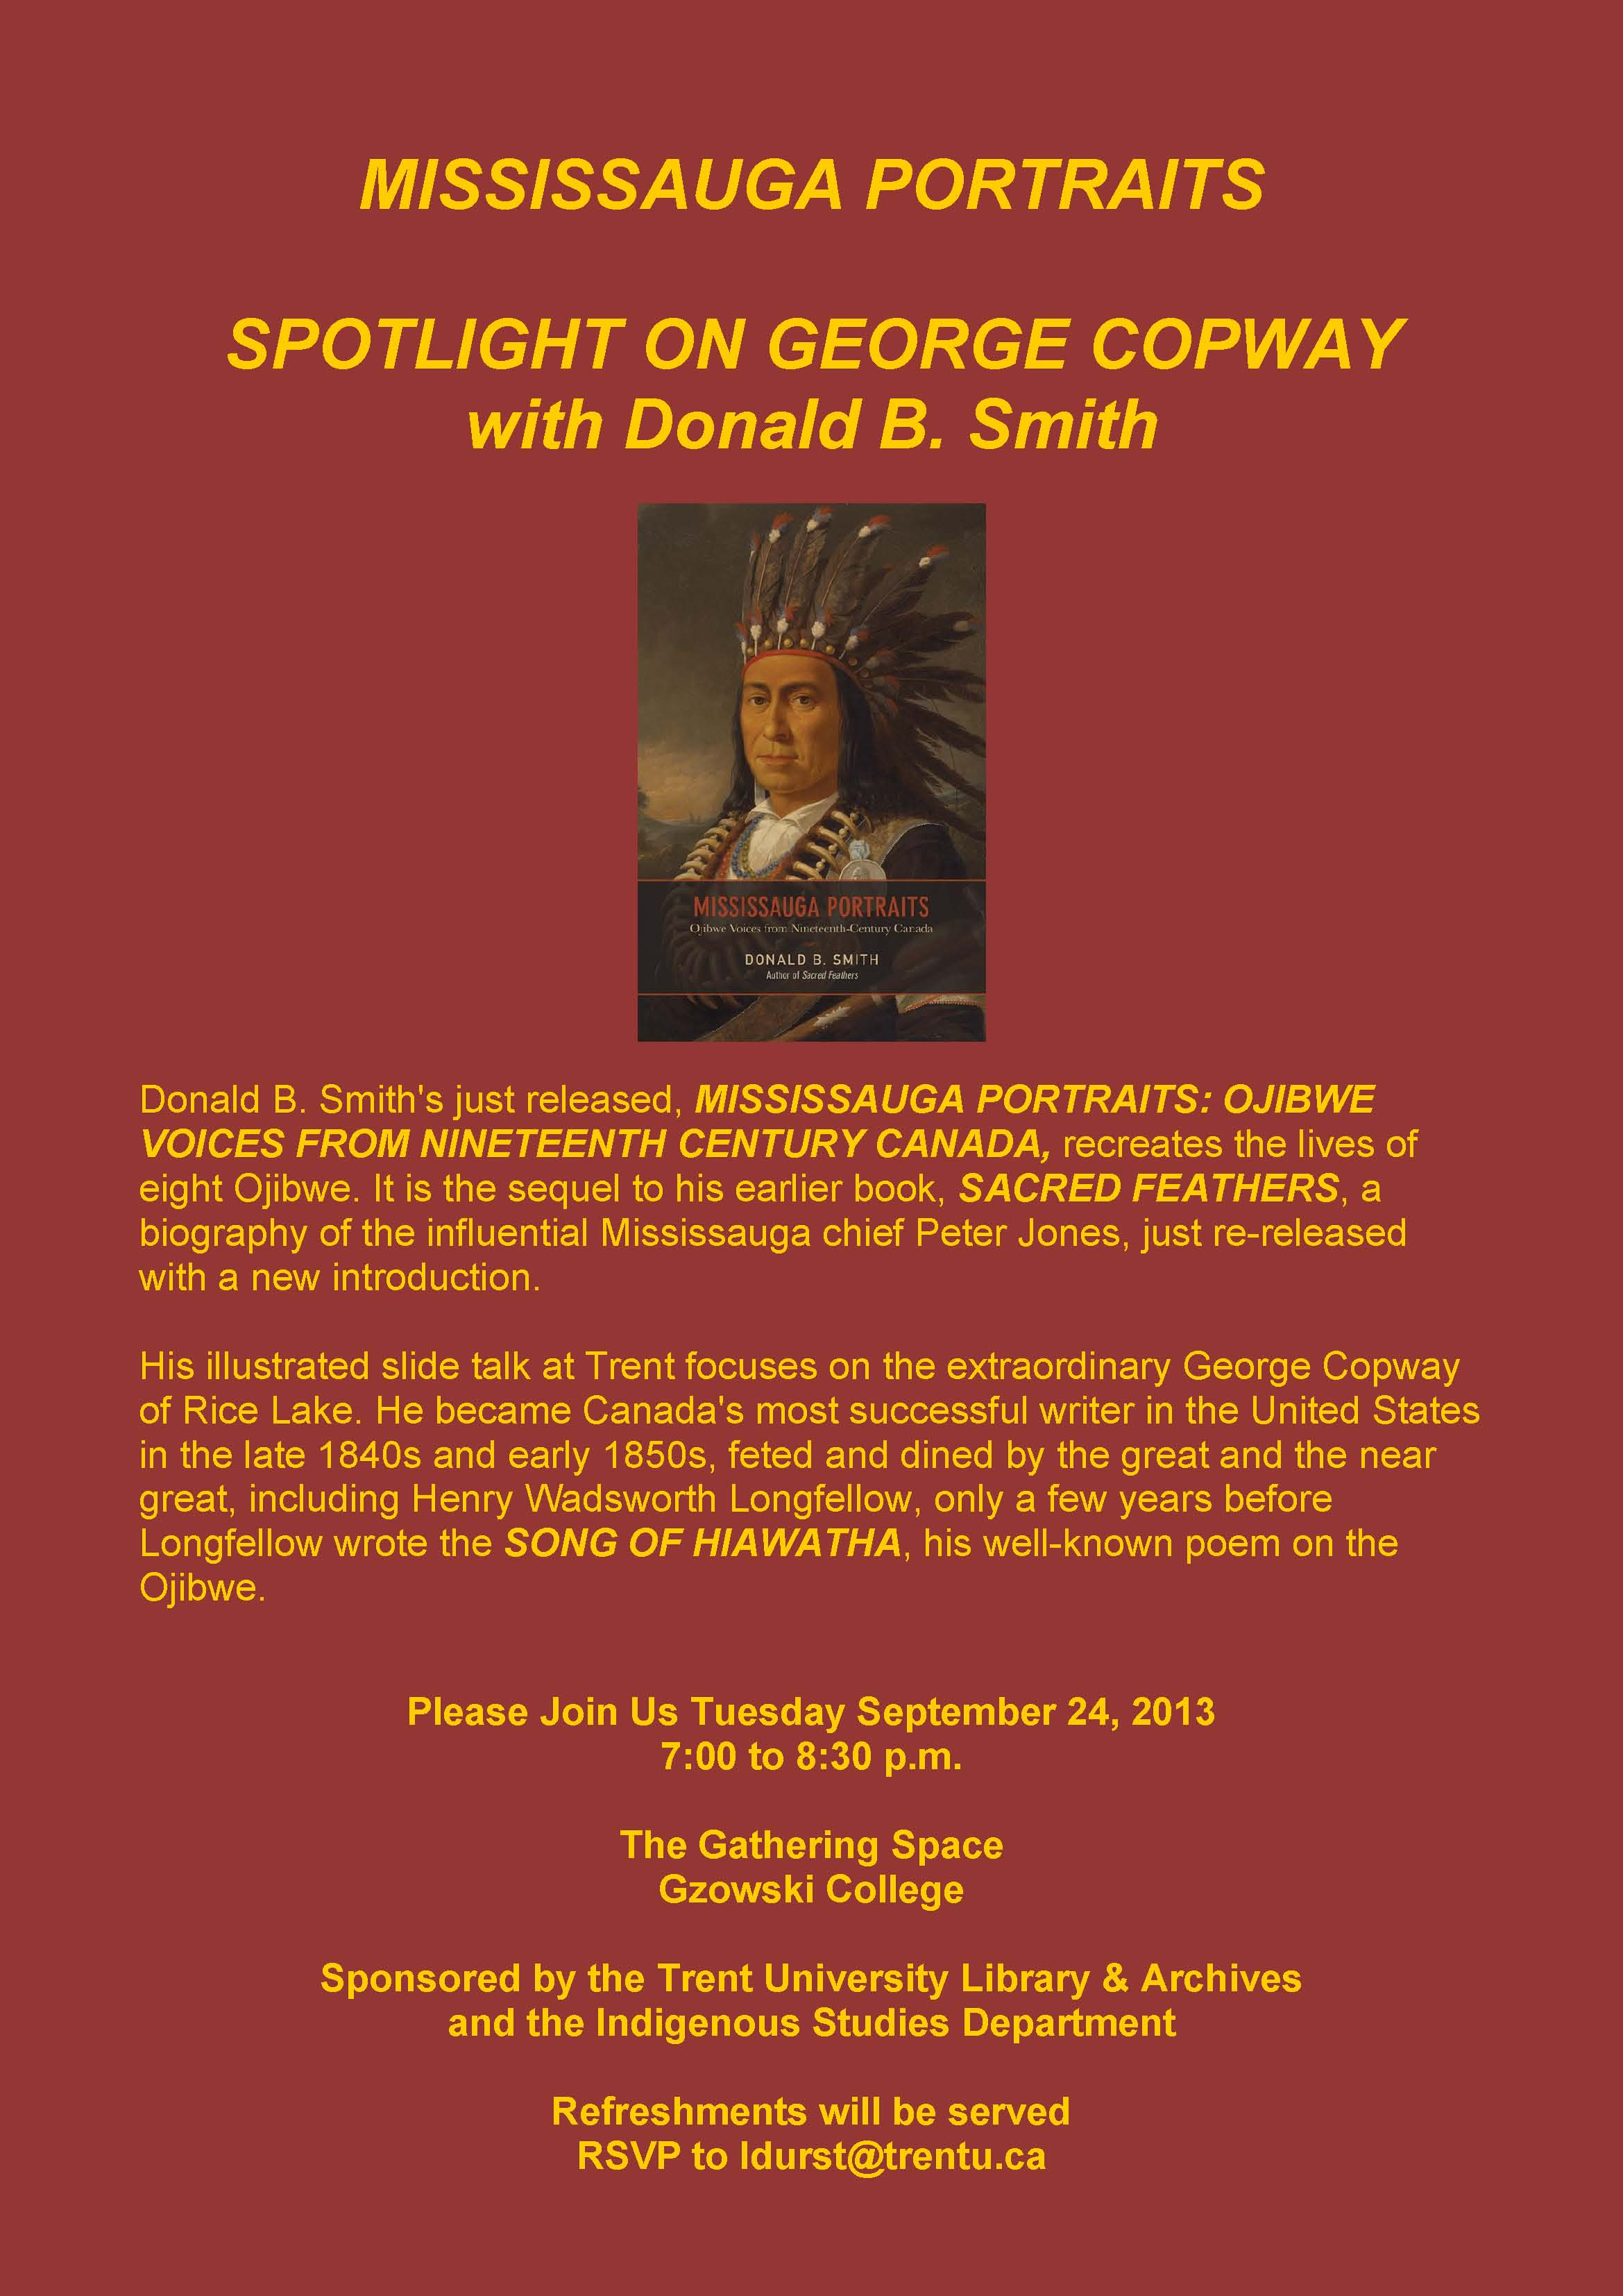 Poster COPWAY Sept 24 Donald B. Smith's just released, MISSISSAUGA PORTRAITS:  OJIBWE VOICES FROM NINETEENTH CENTURY CANADA ...